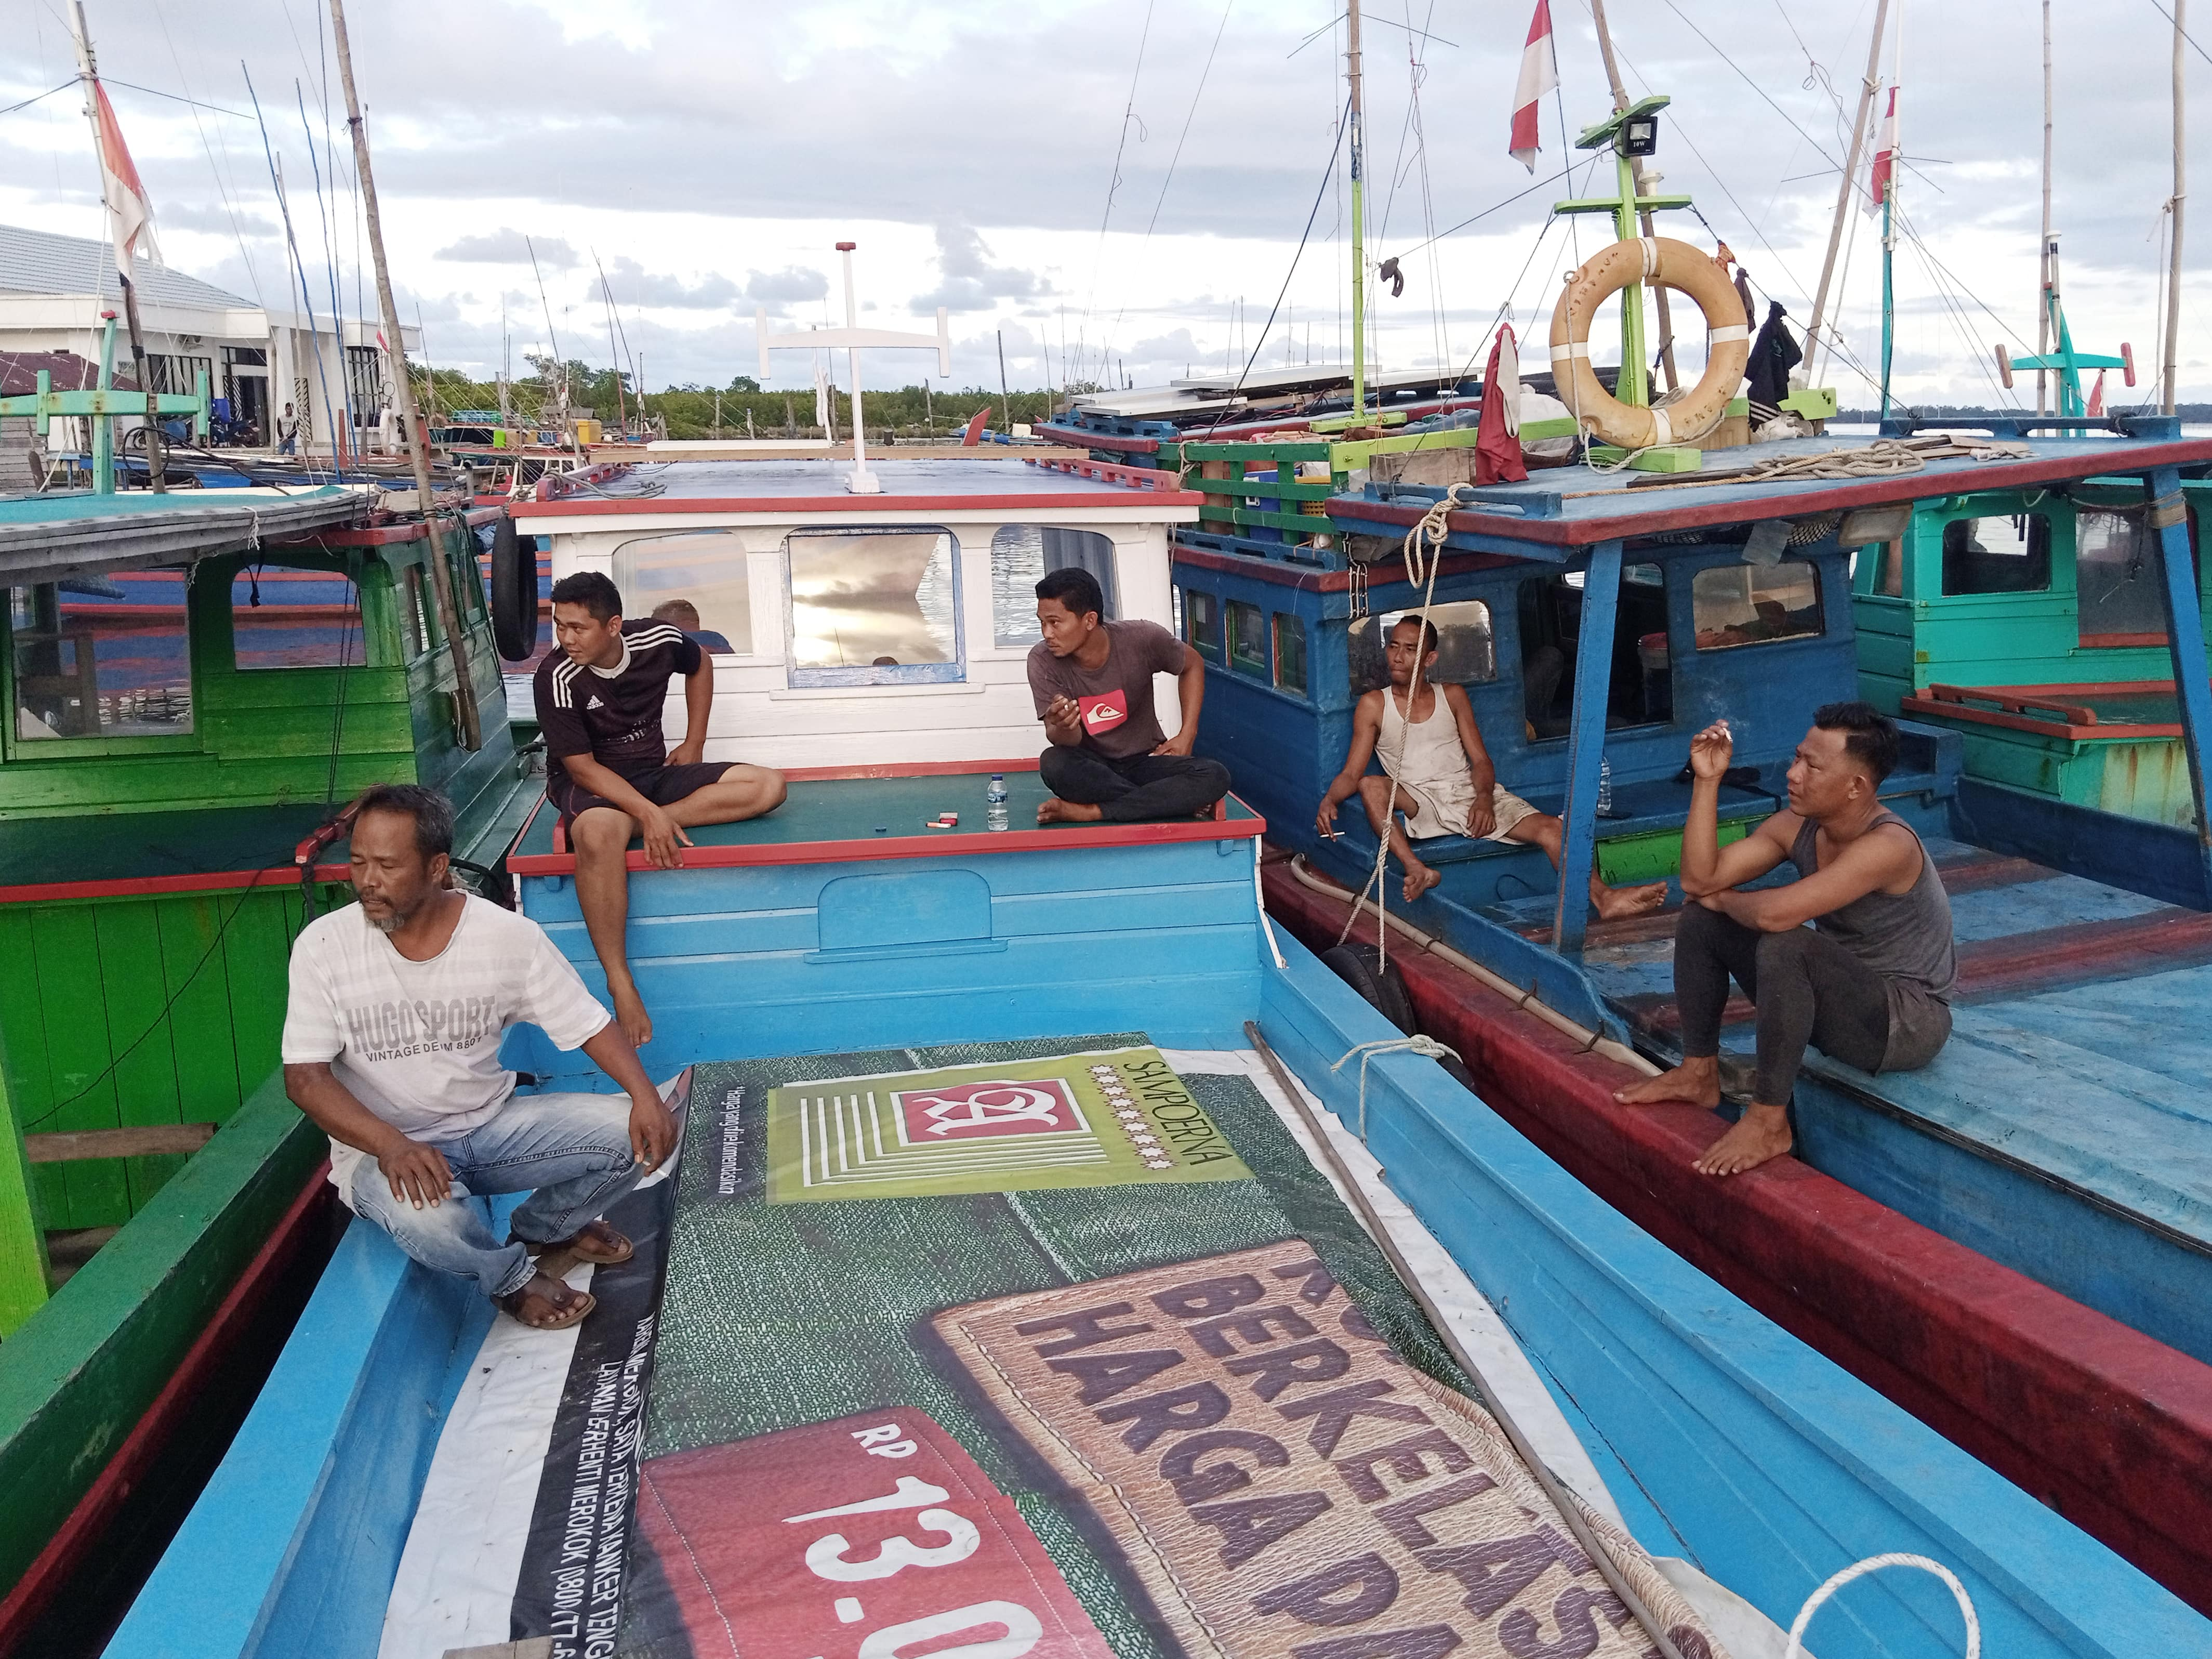 Fishermen's activities at the Natuna port, Riau Islands Province, April 28, 2021. Natuna fishermen are the victims of low fish catches due to the massive number of foreign fishing vessels stealing fish in the island's waters. Photo / Yogi Eka Sahputra